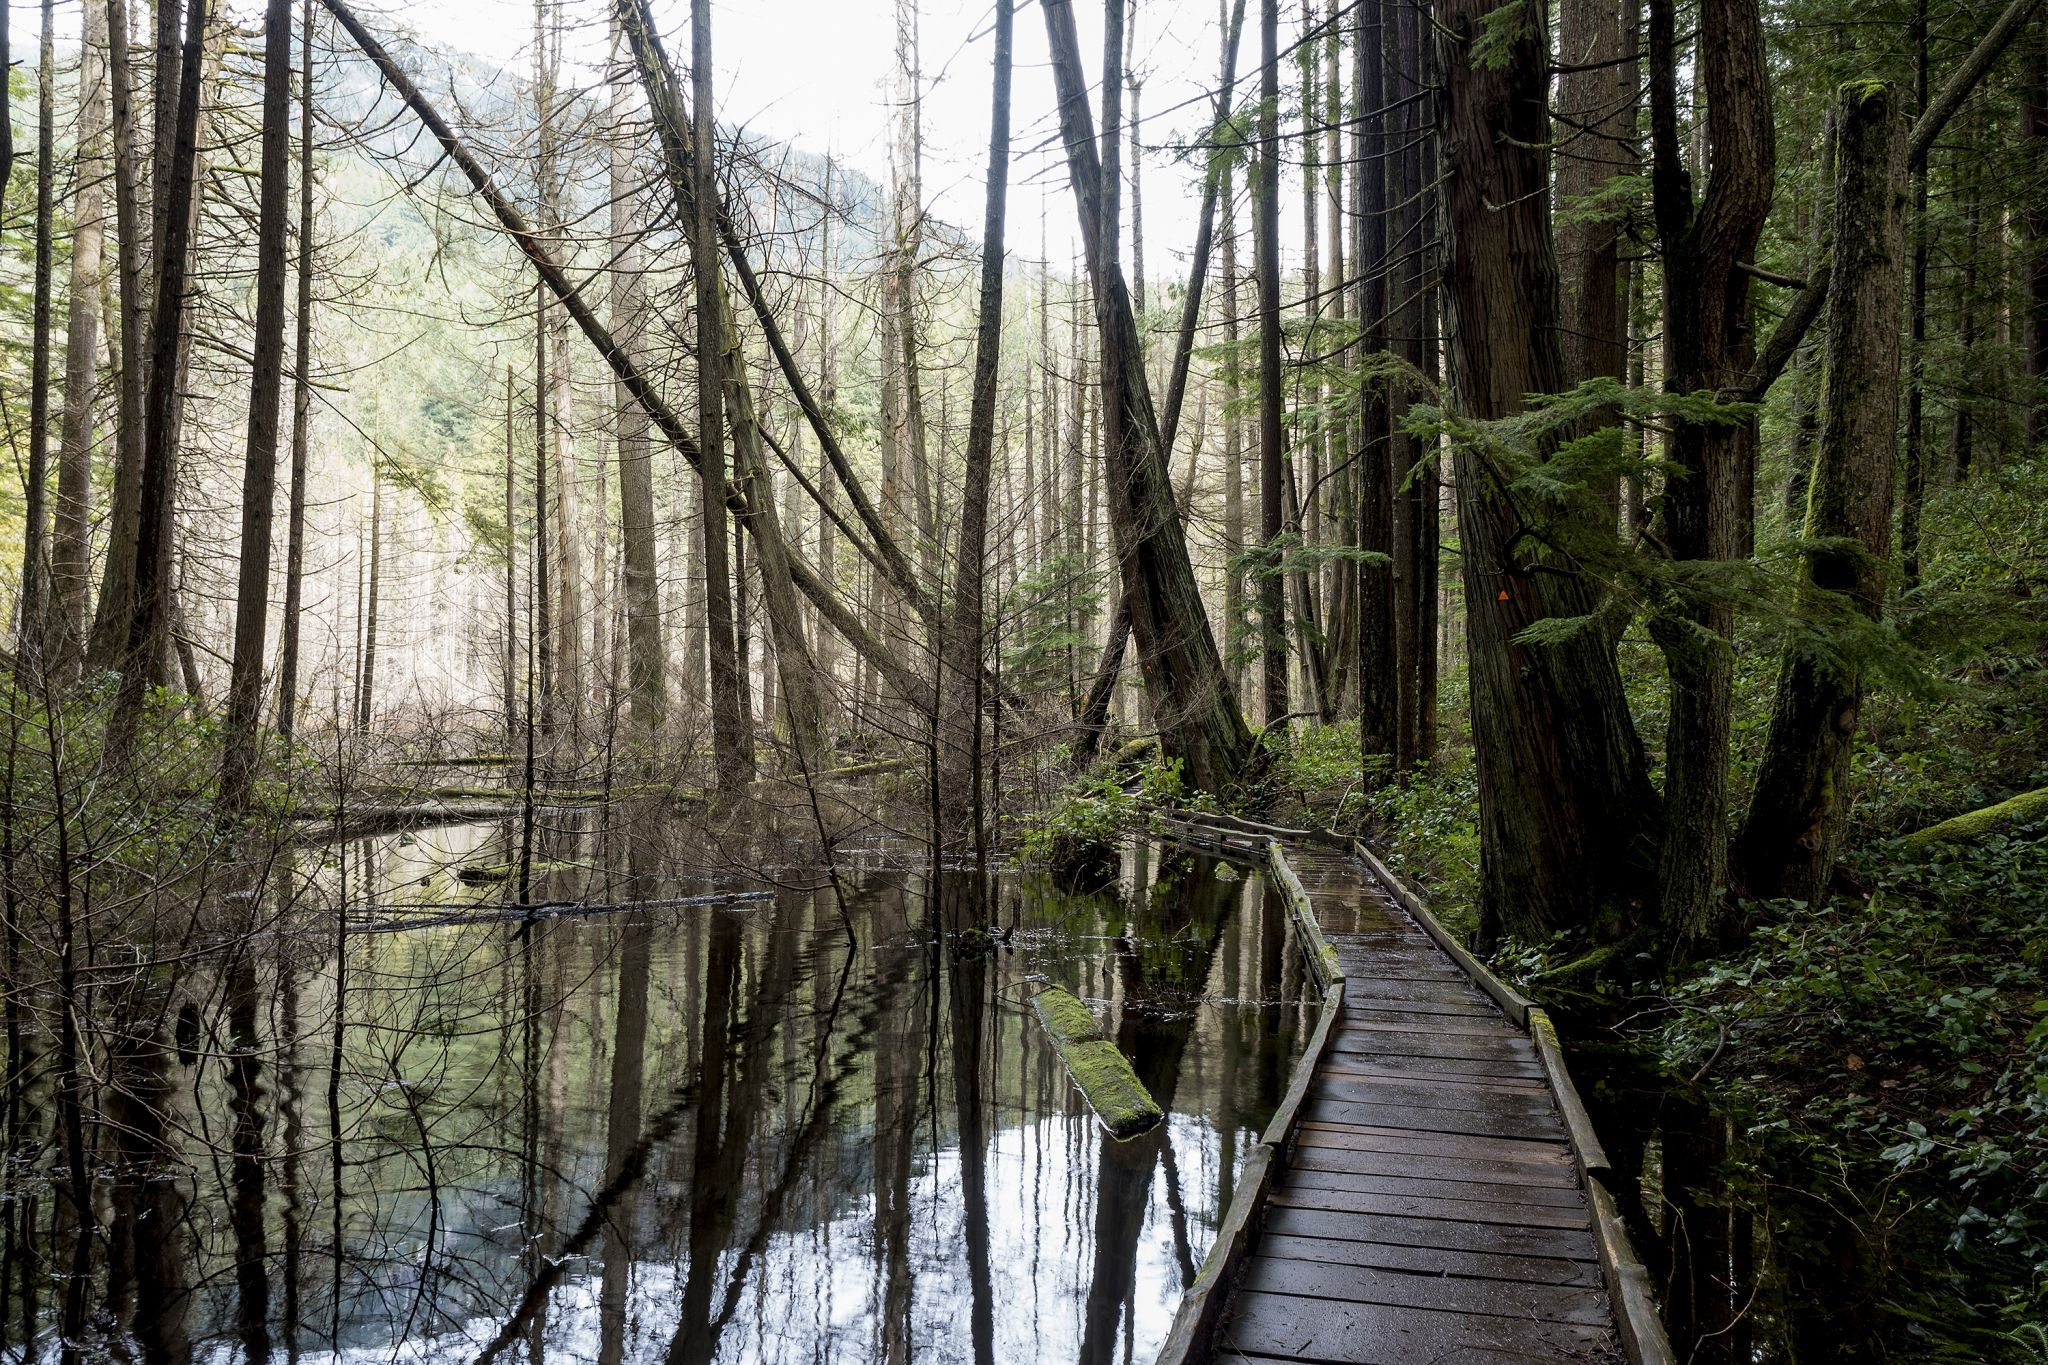 Whyte Lake, West Vancouver, Canada